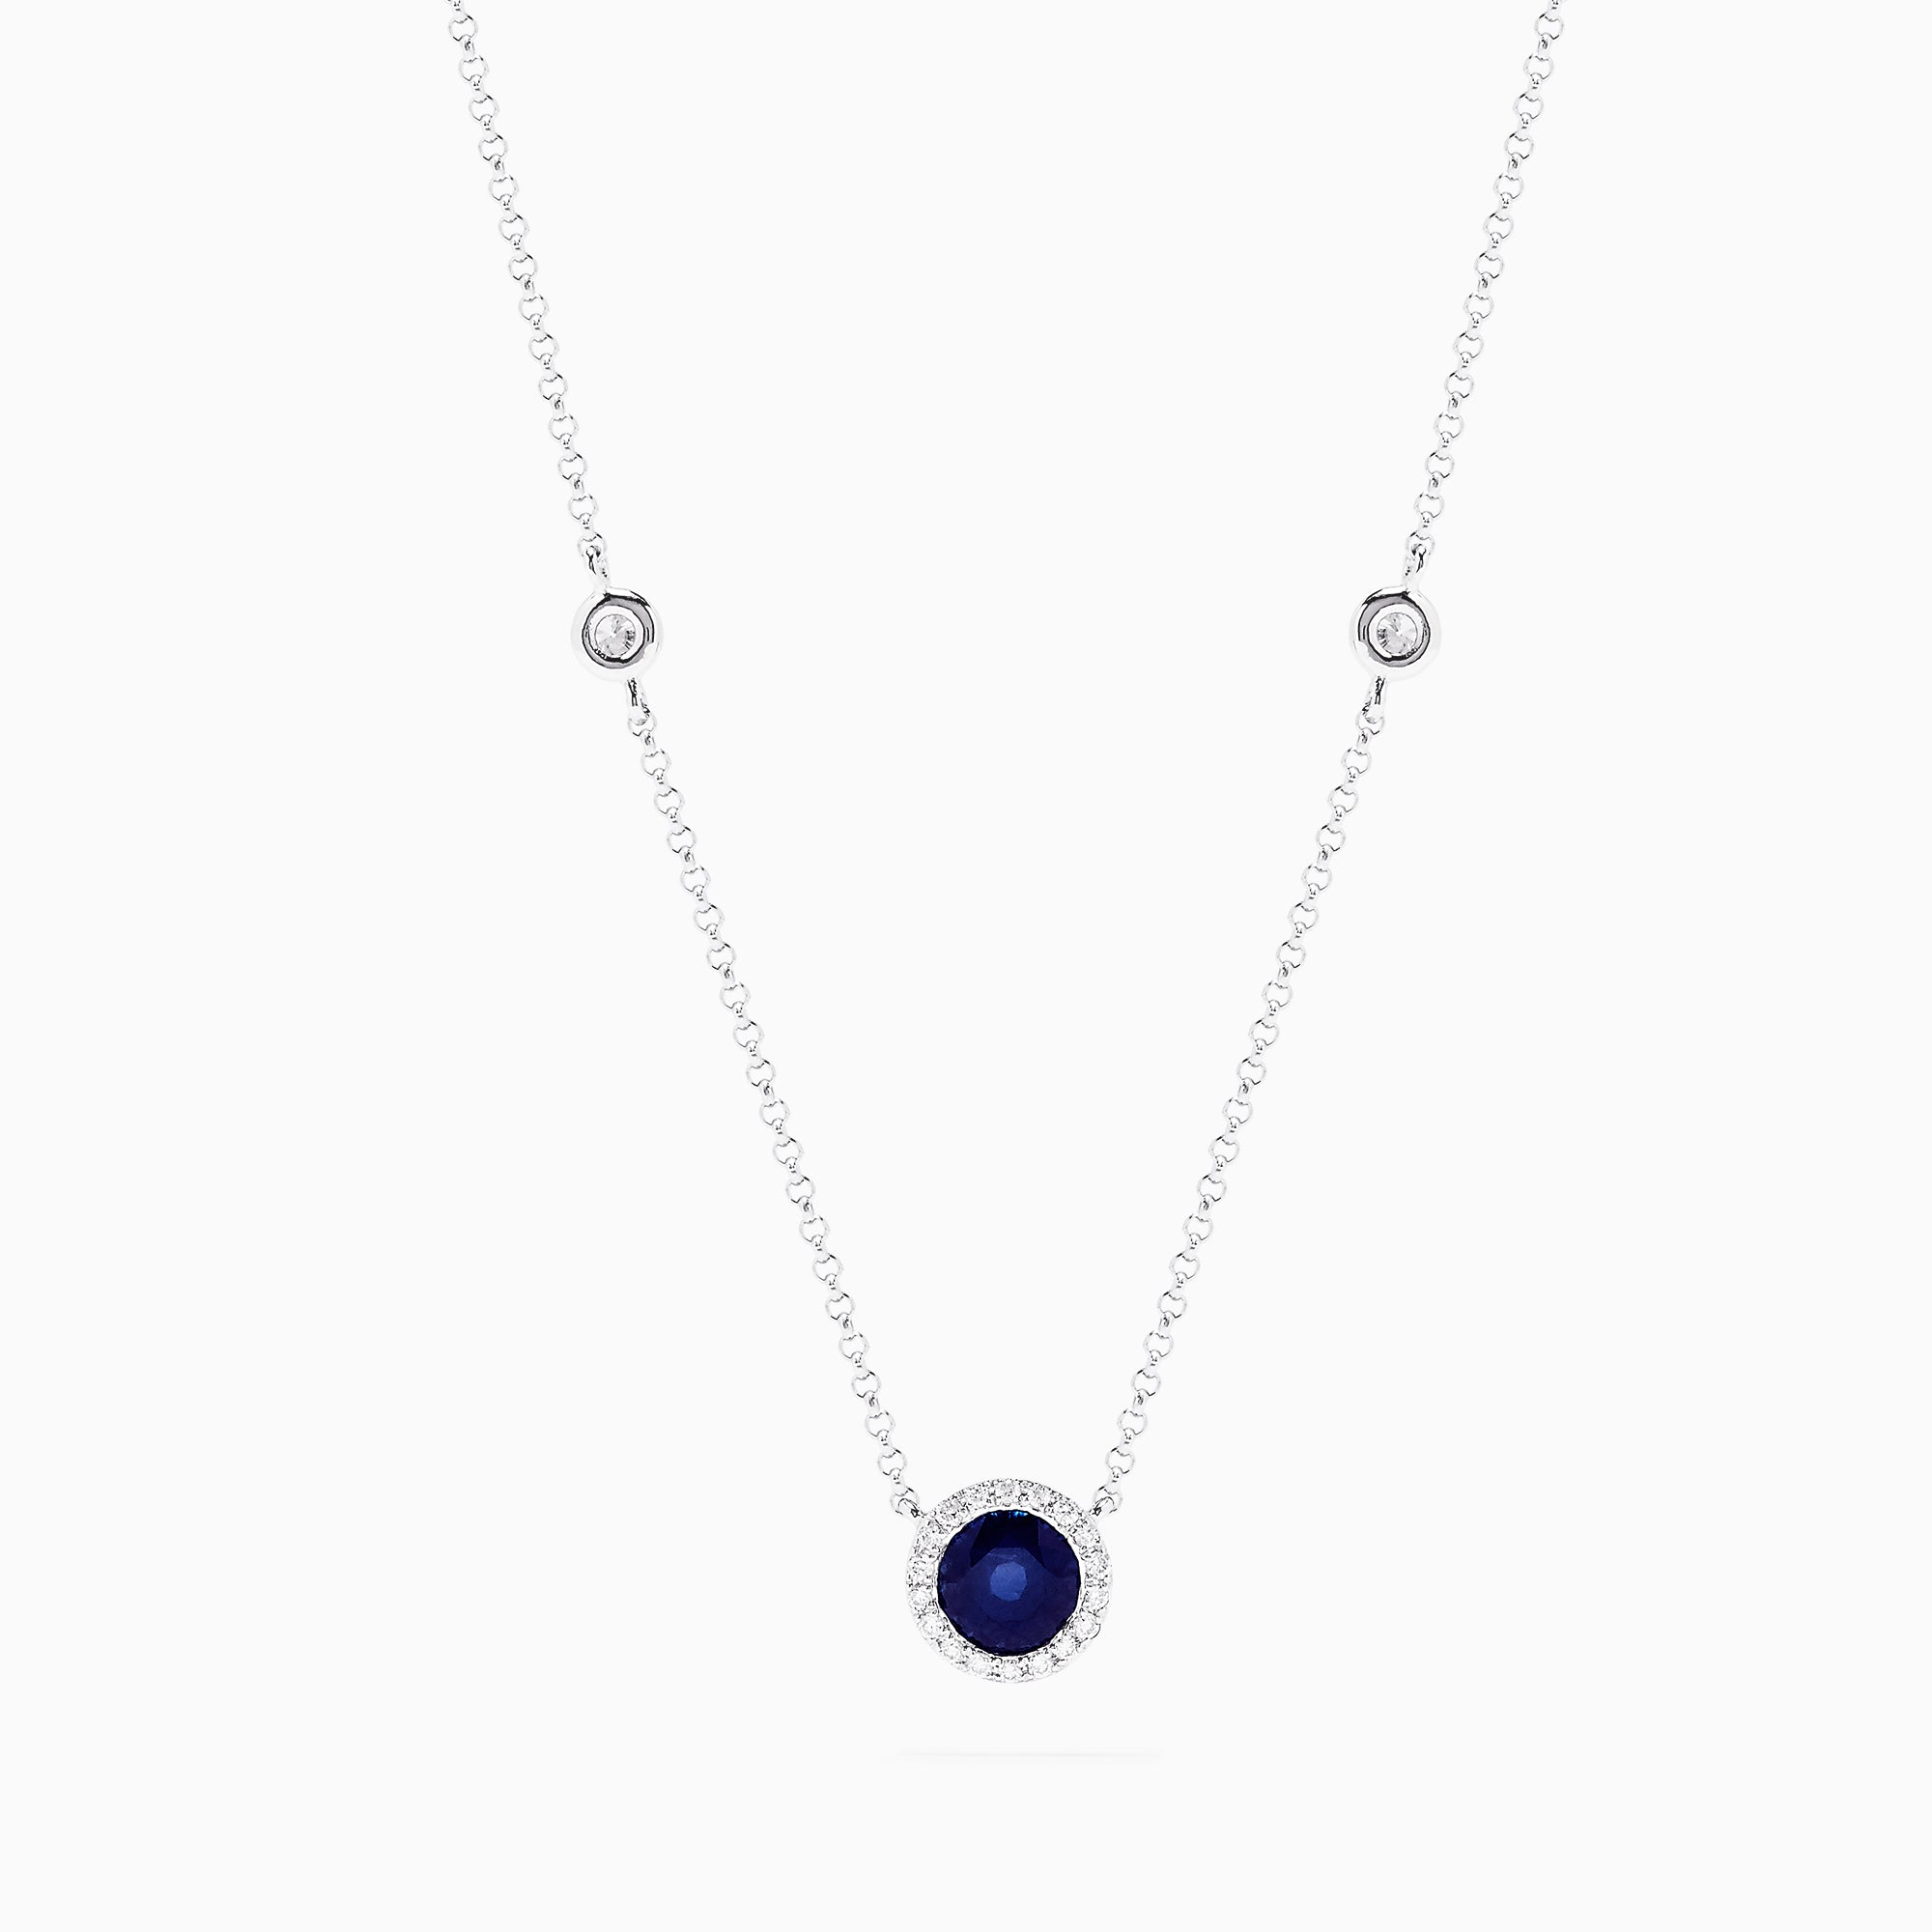 Effy 14K White Gold Blue Sapphire and Diamond Necklace, 1.02 TCW